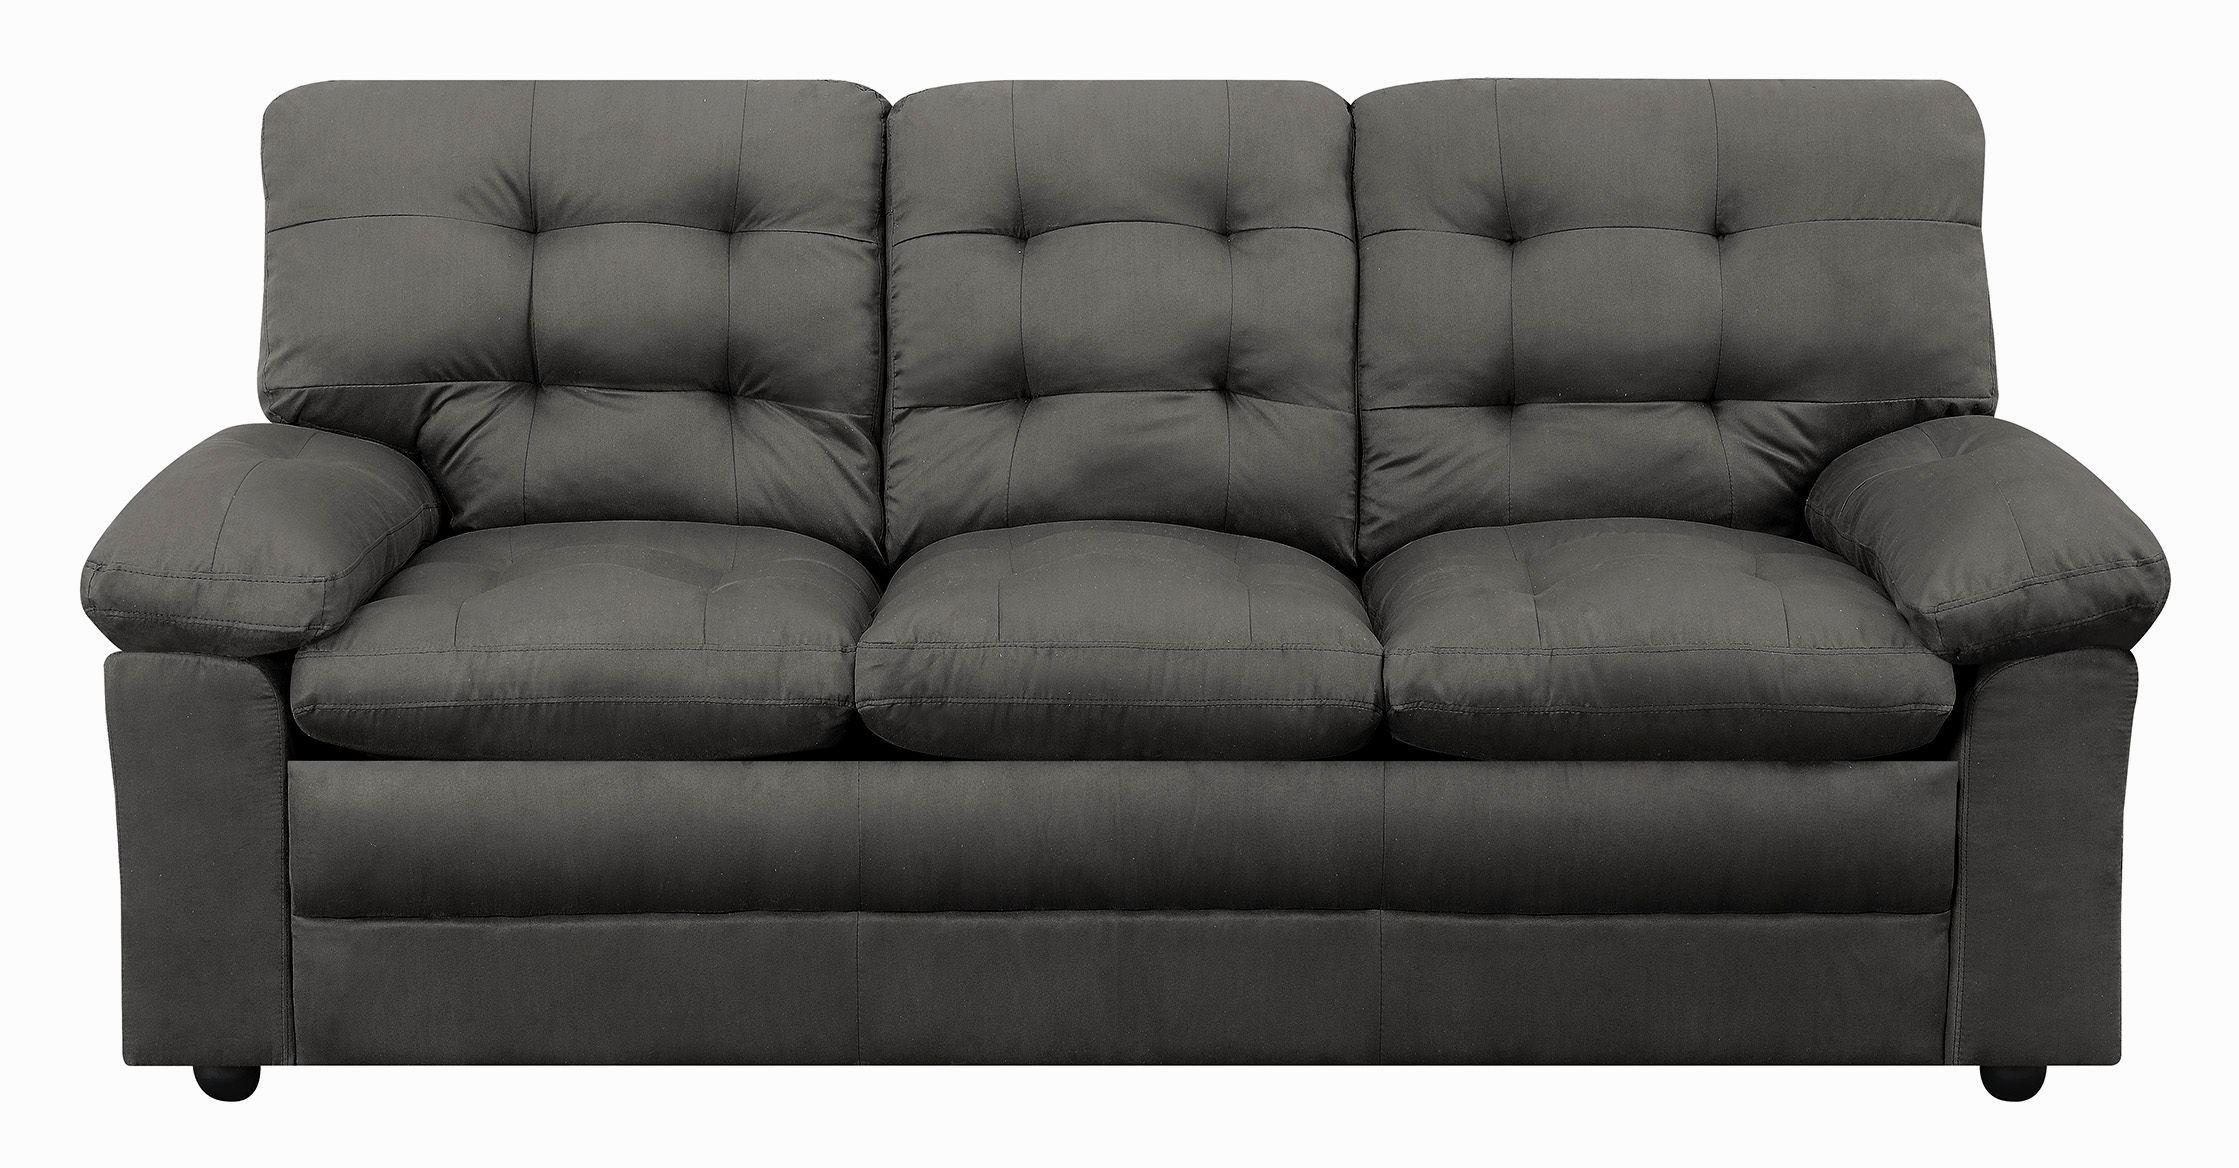 unique buchannan faux leather sofa model-Cool Buchannan Faux Leather sofa Décor